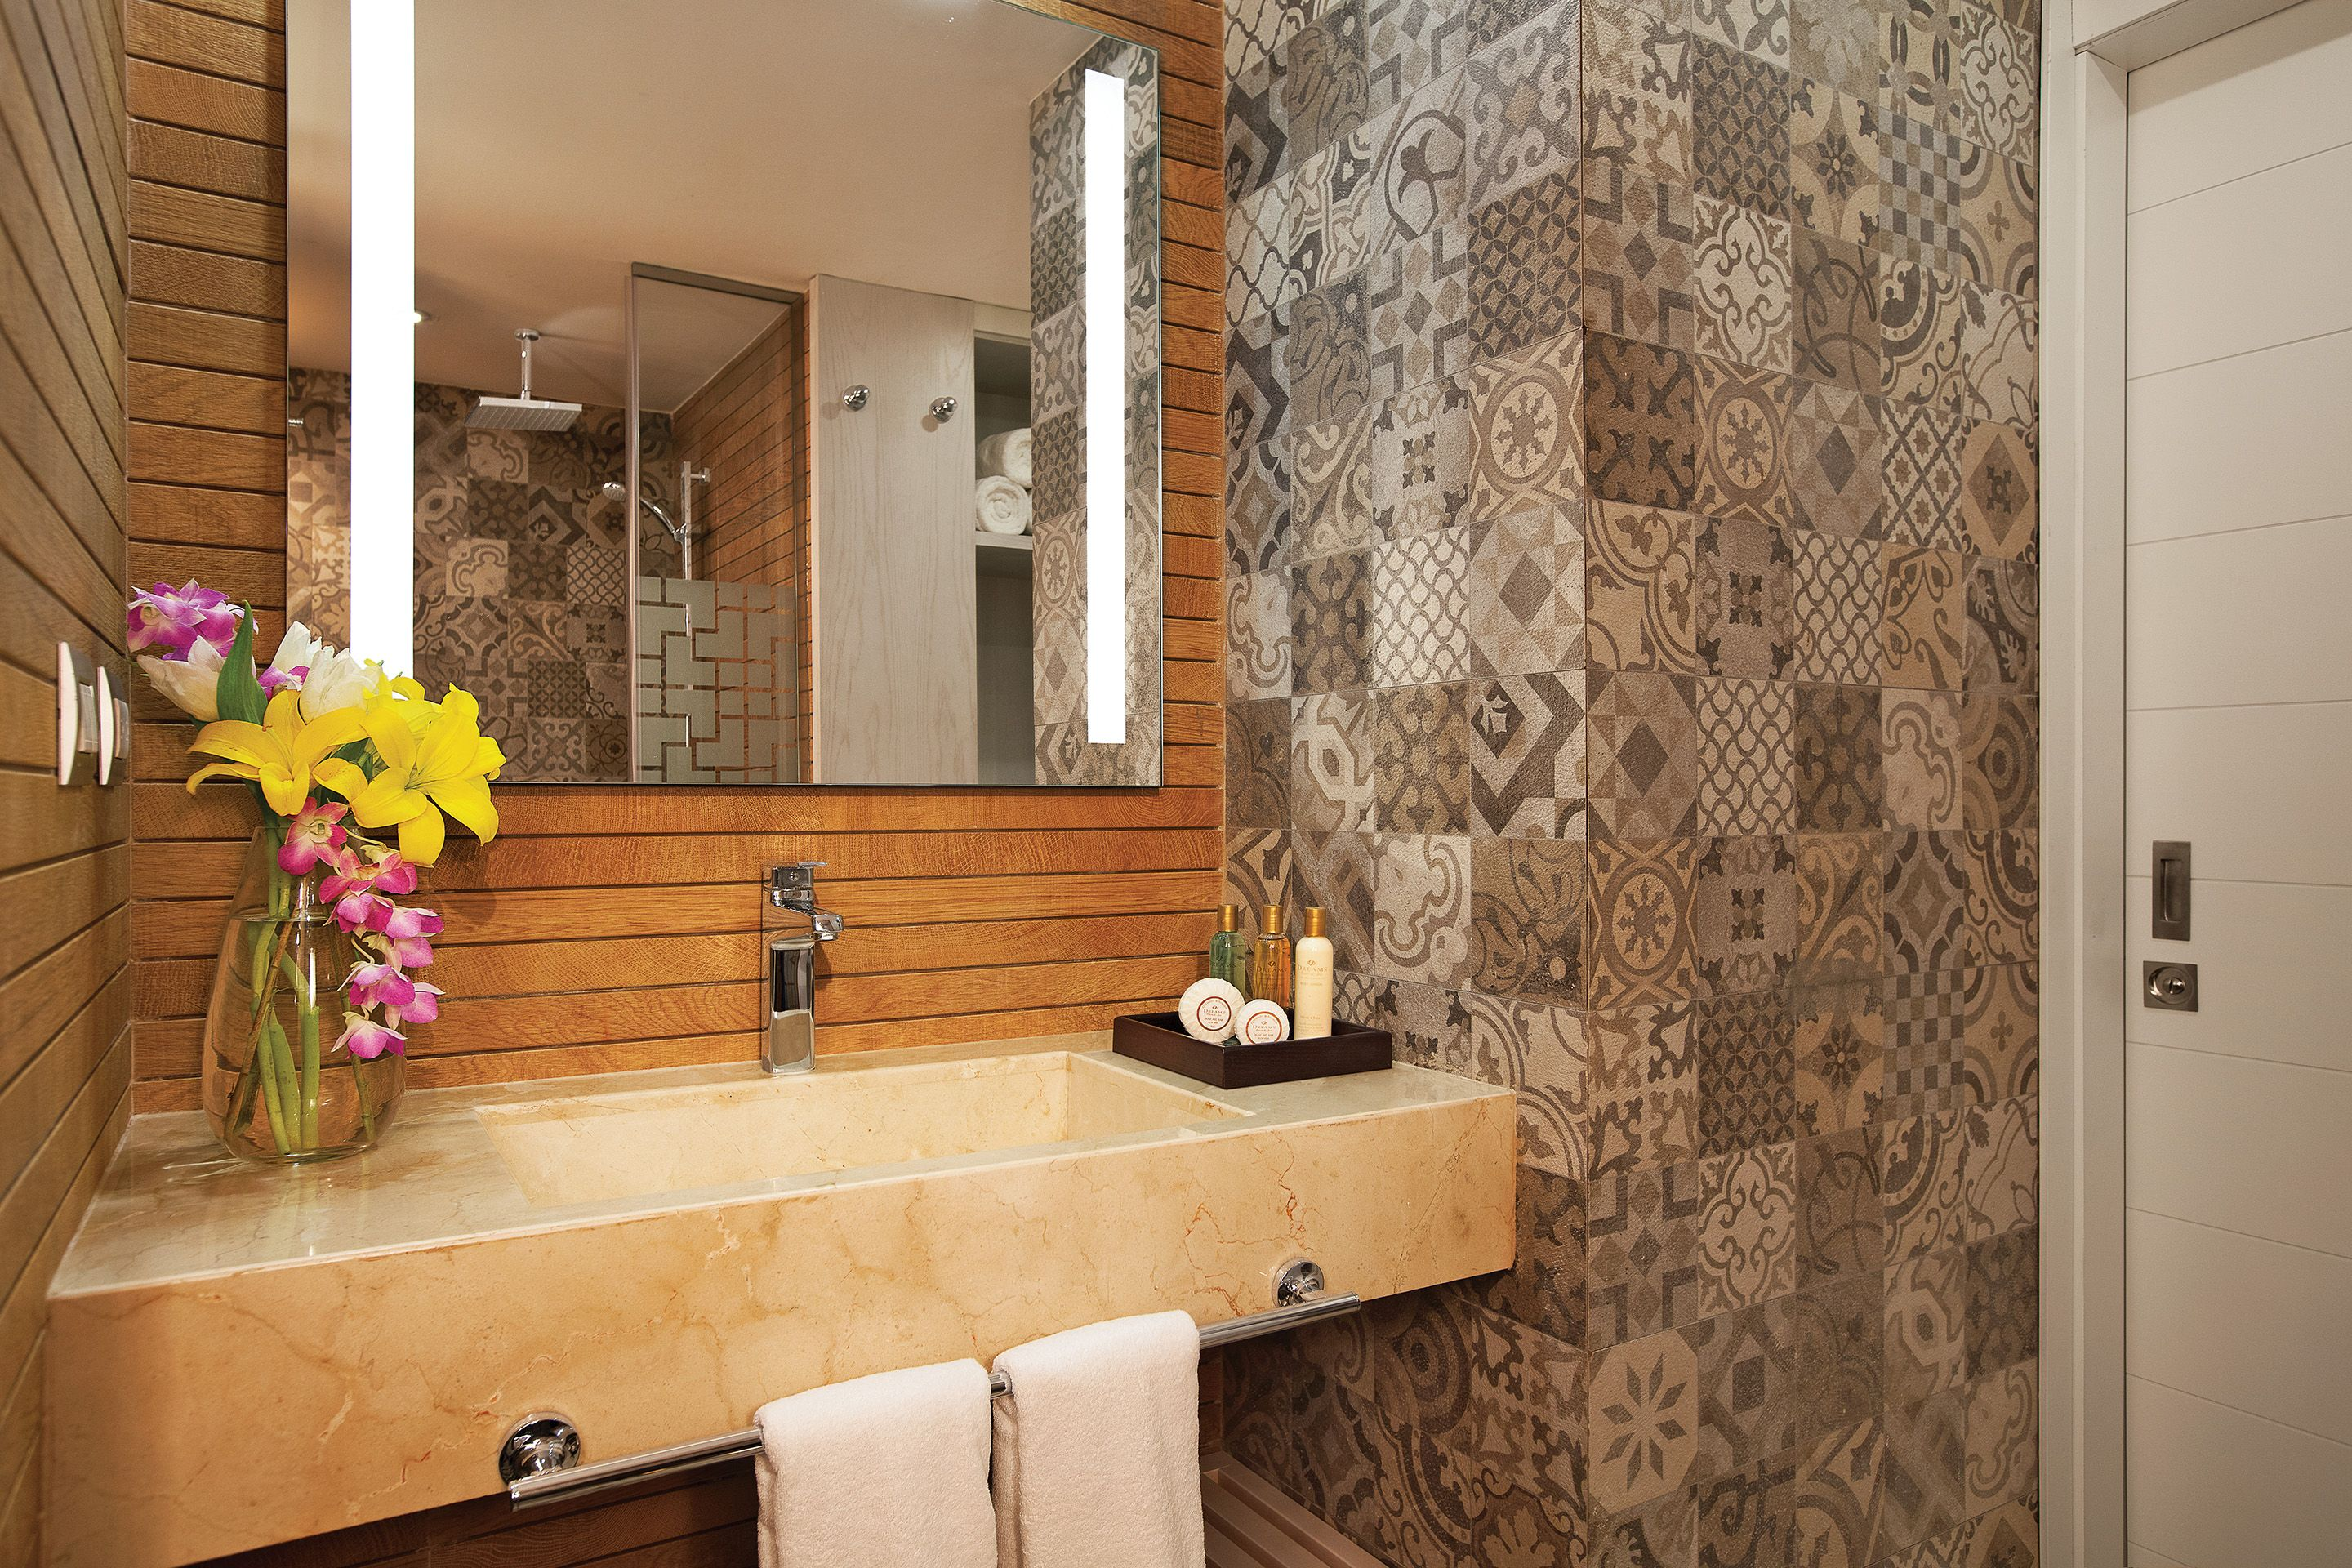 Check Out The Vanity For All Of Our Premium Deluxe Rooms